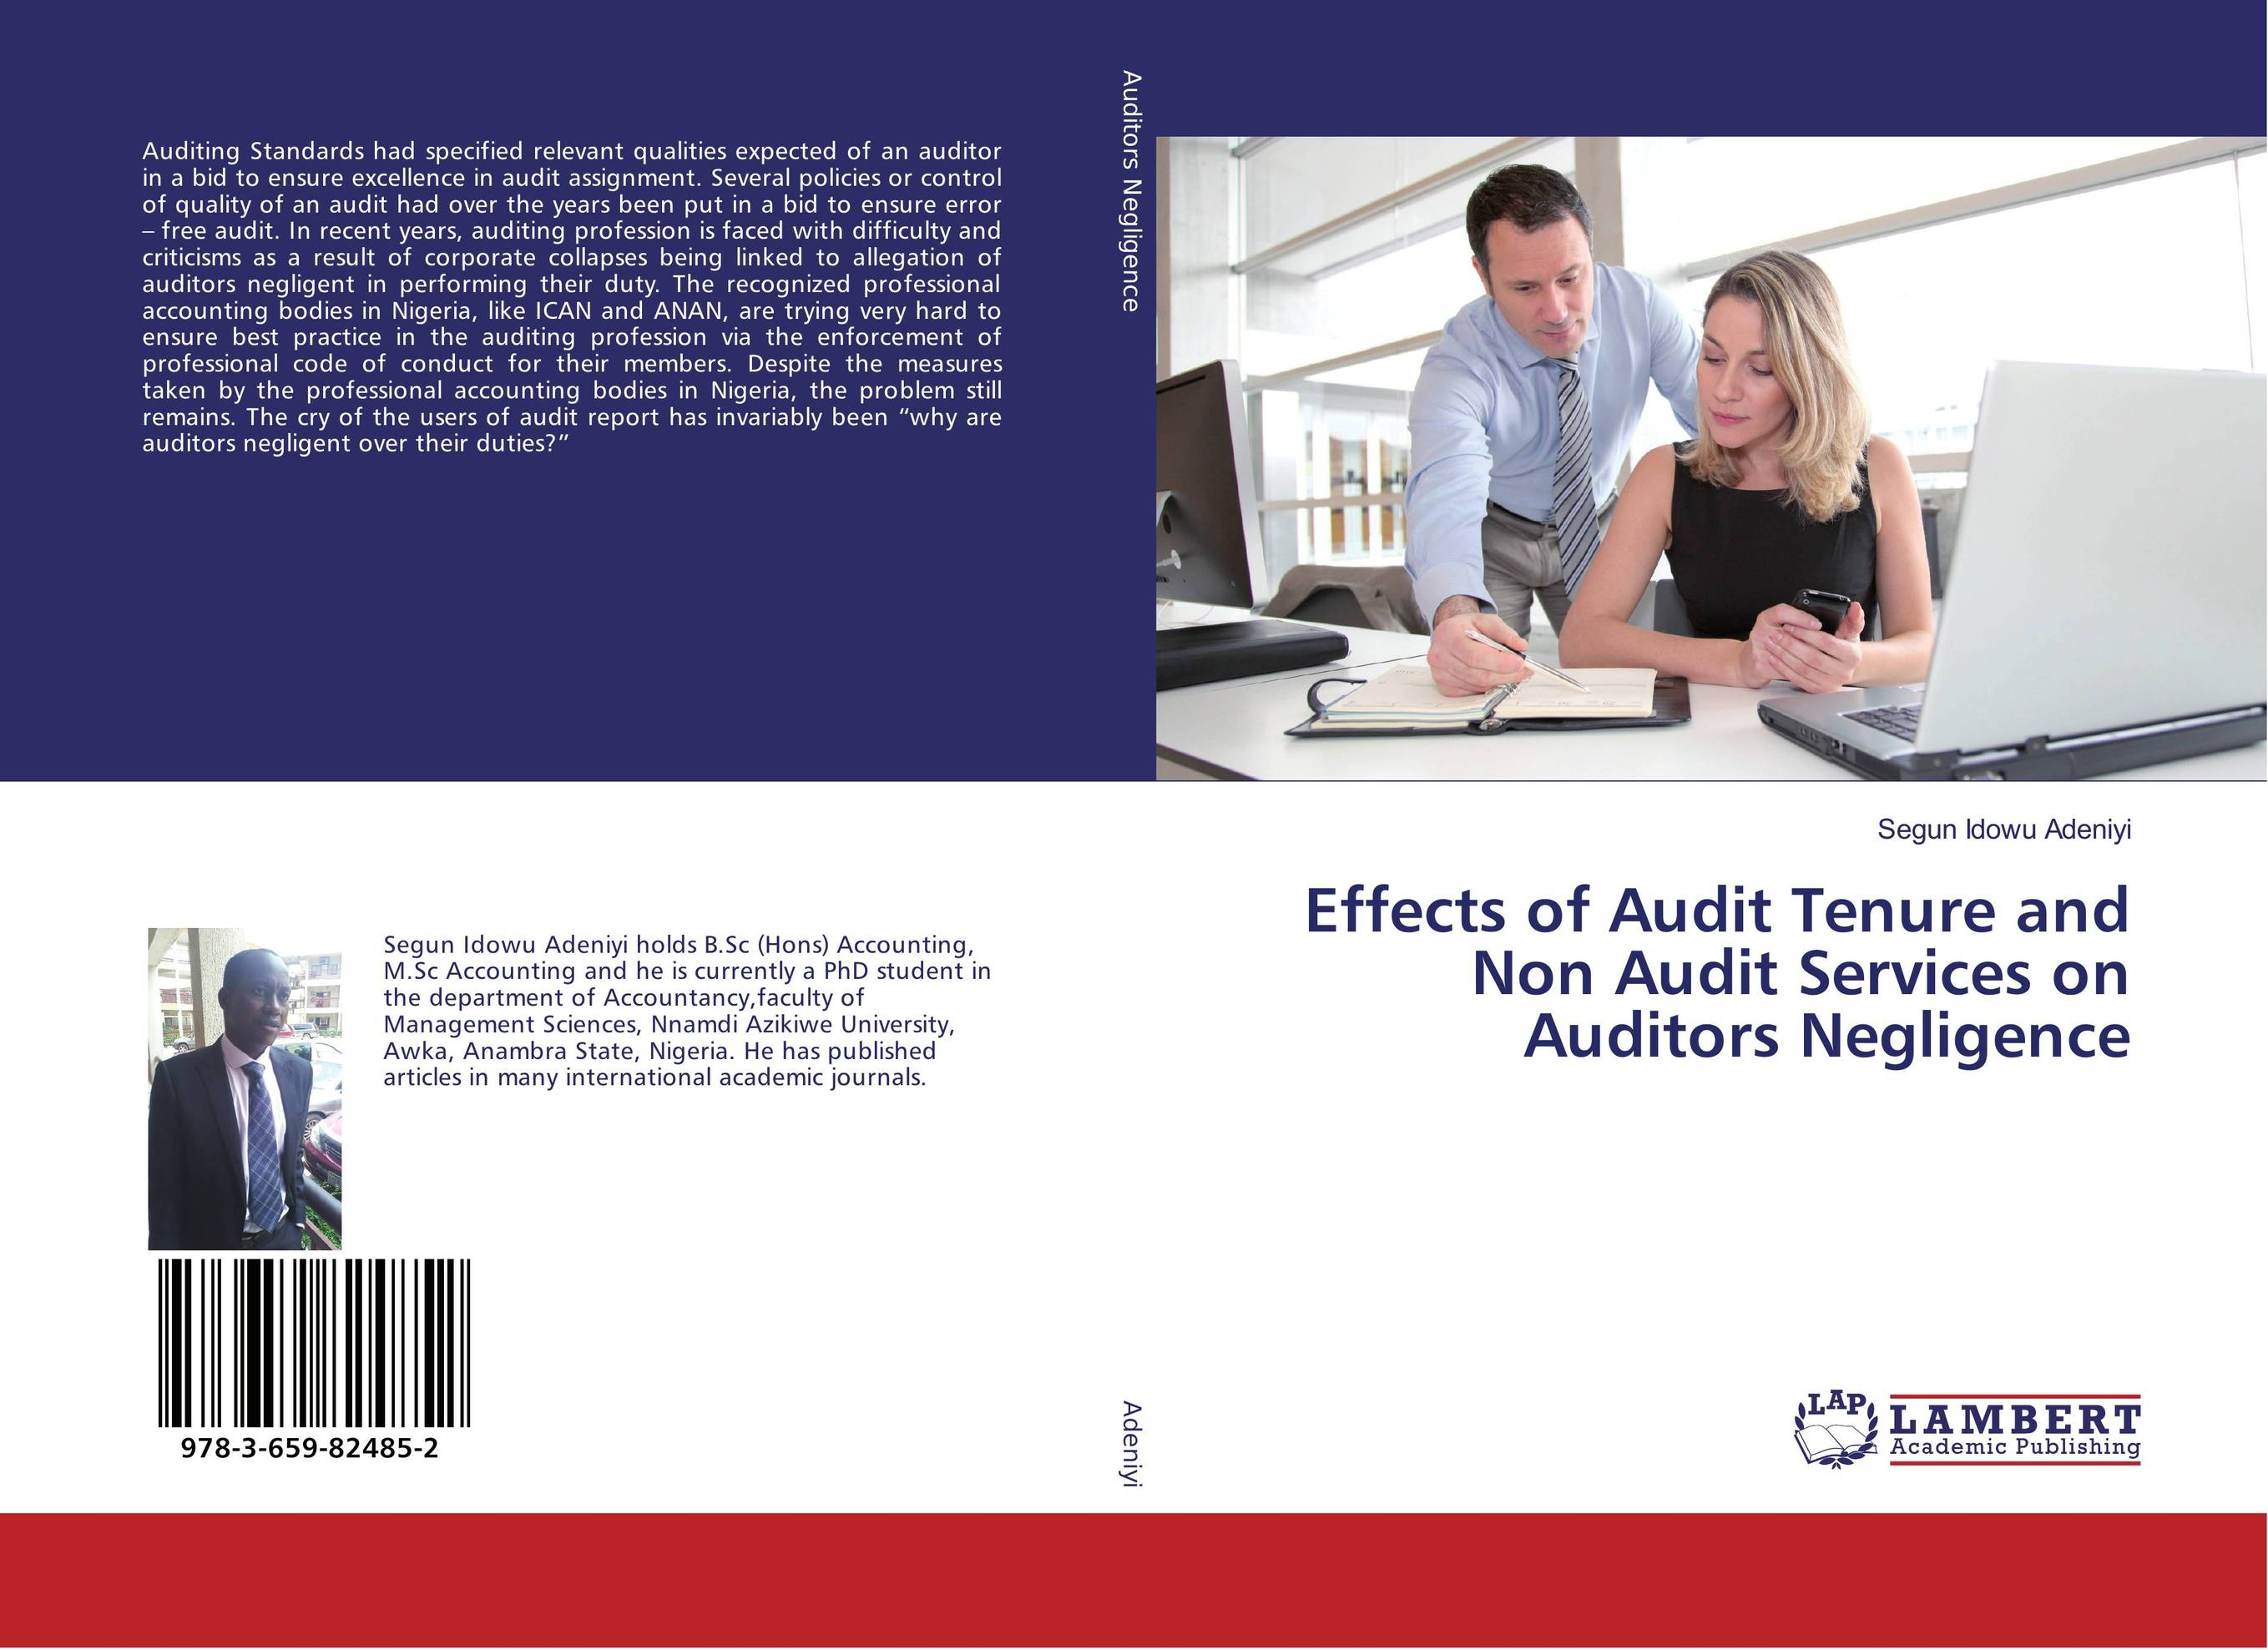 Effects of Audit Tenure and Non Audit Services on Auditors Negligence